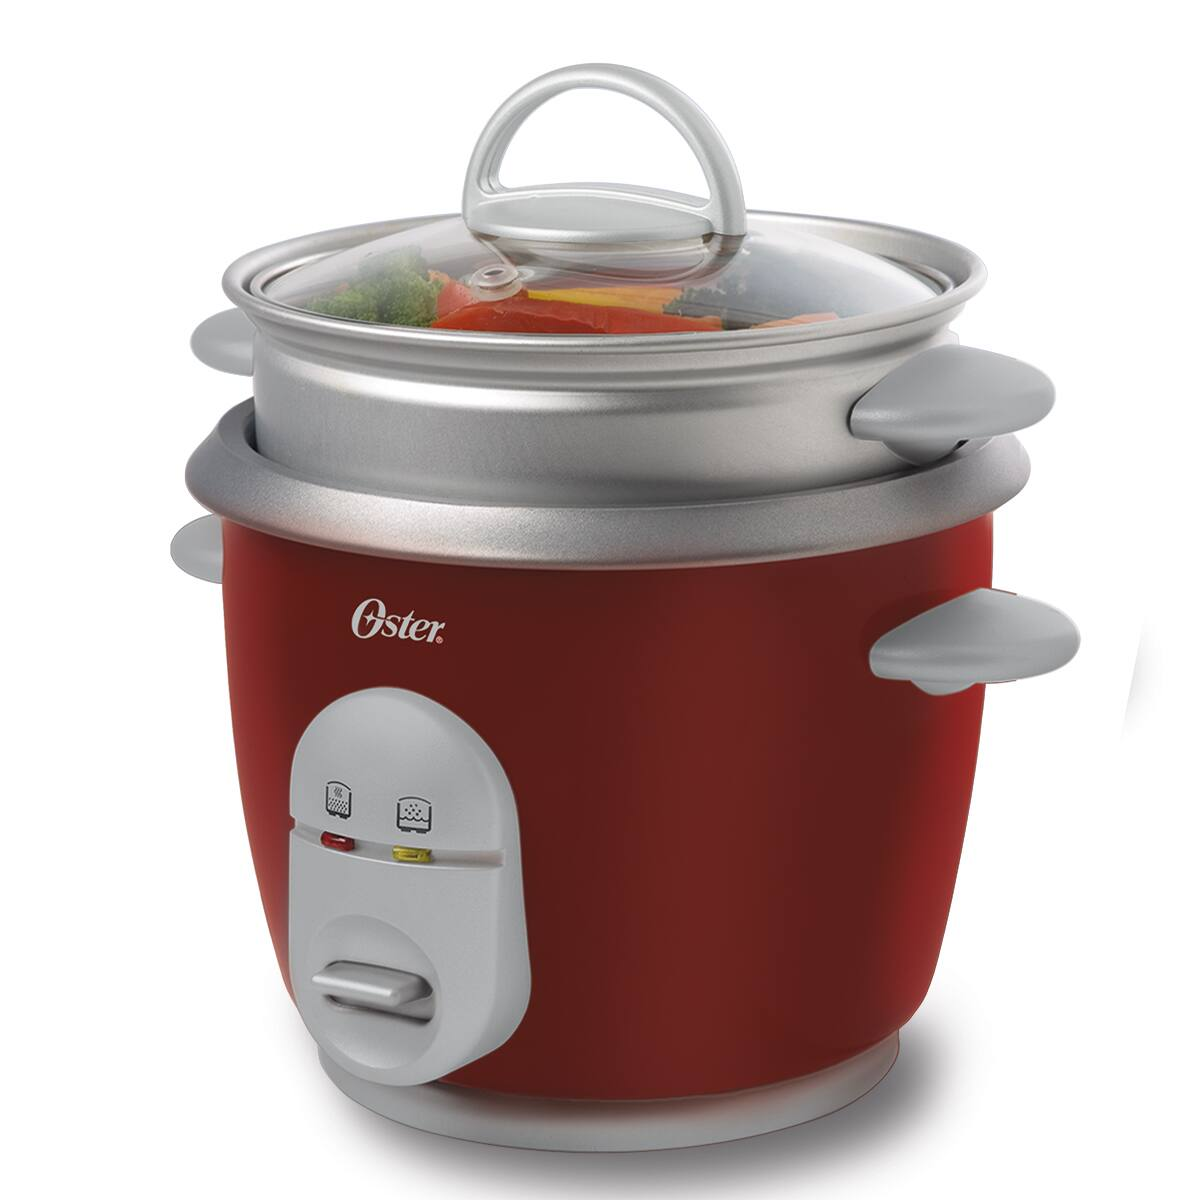 Oster 10 Cup Rice Cooker and Steaming Tray $13.99 + Free shipping